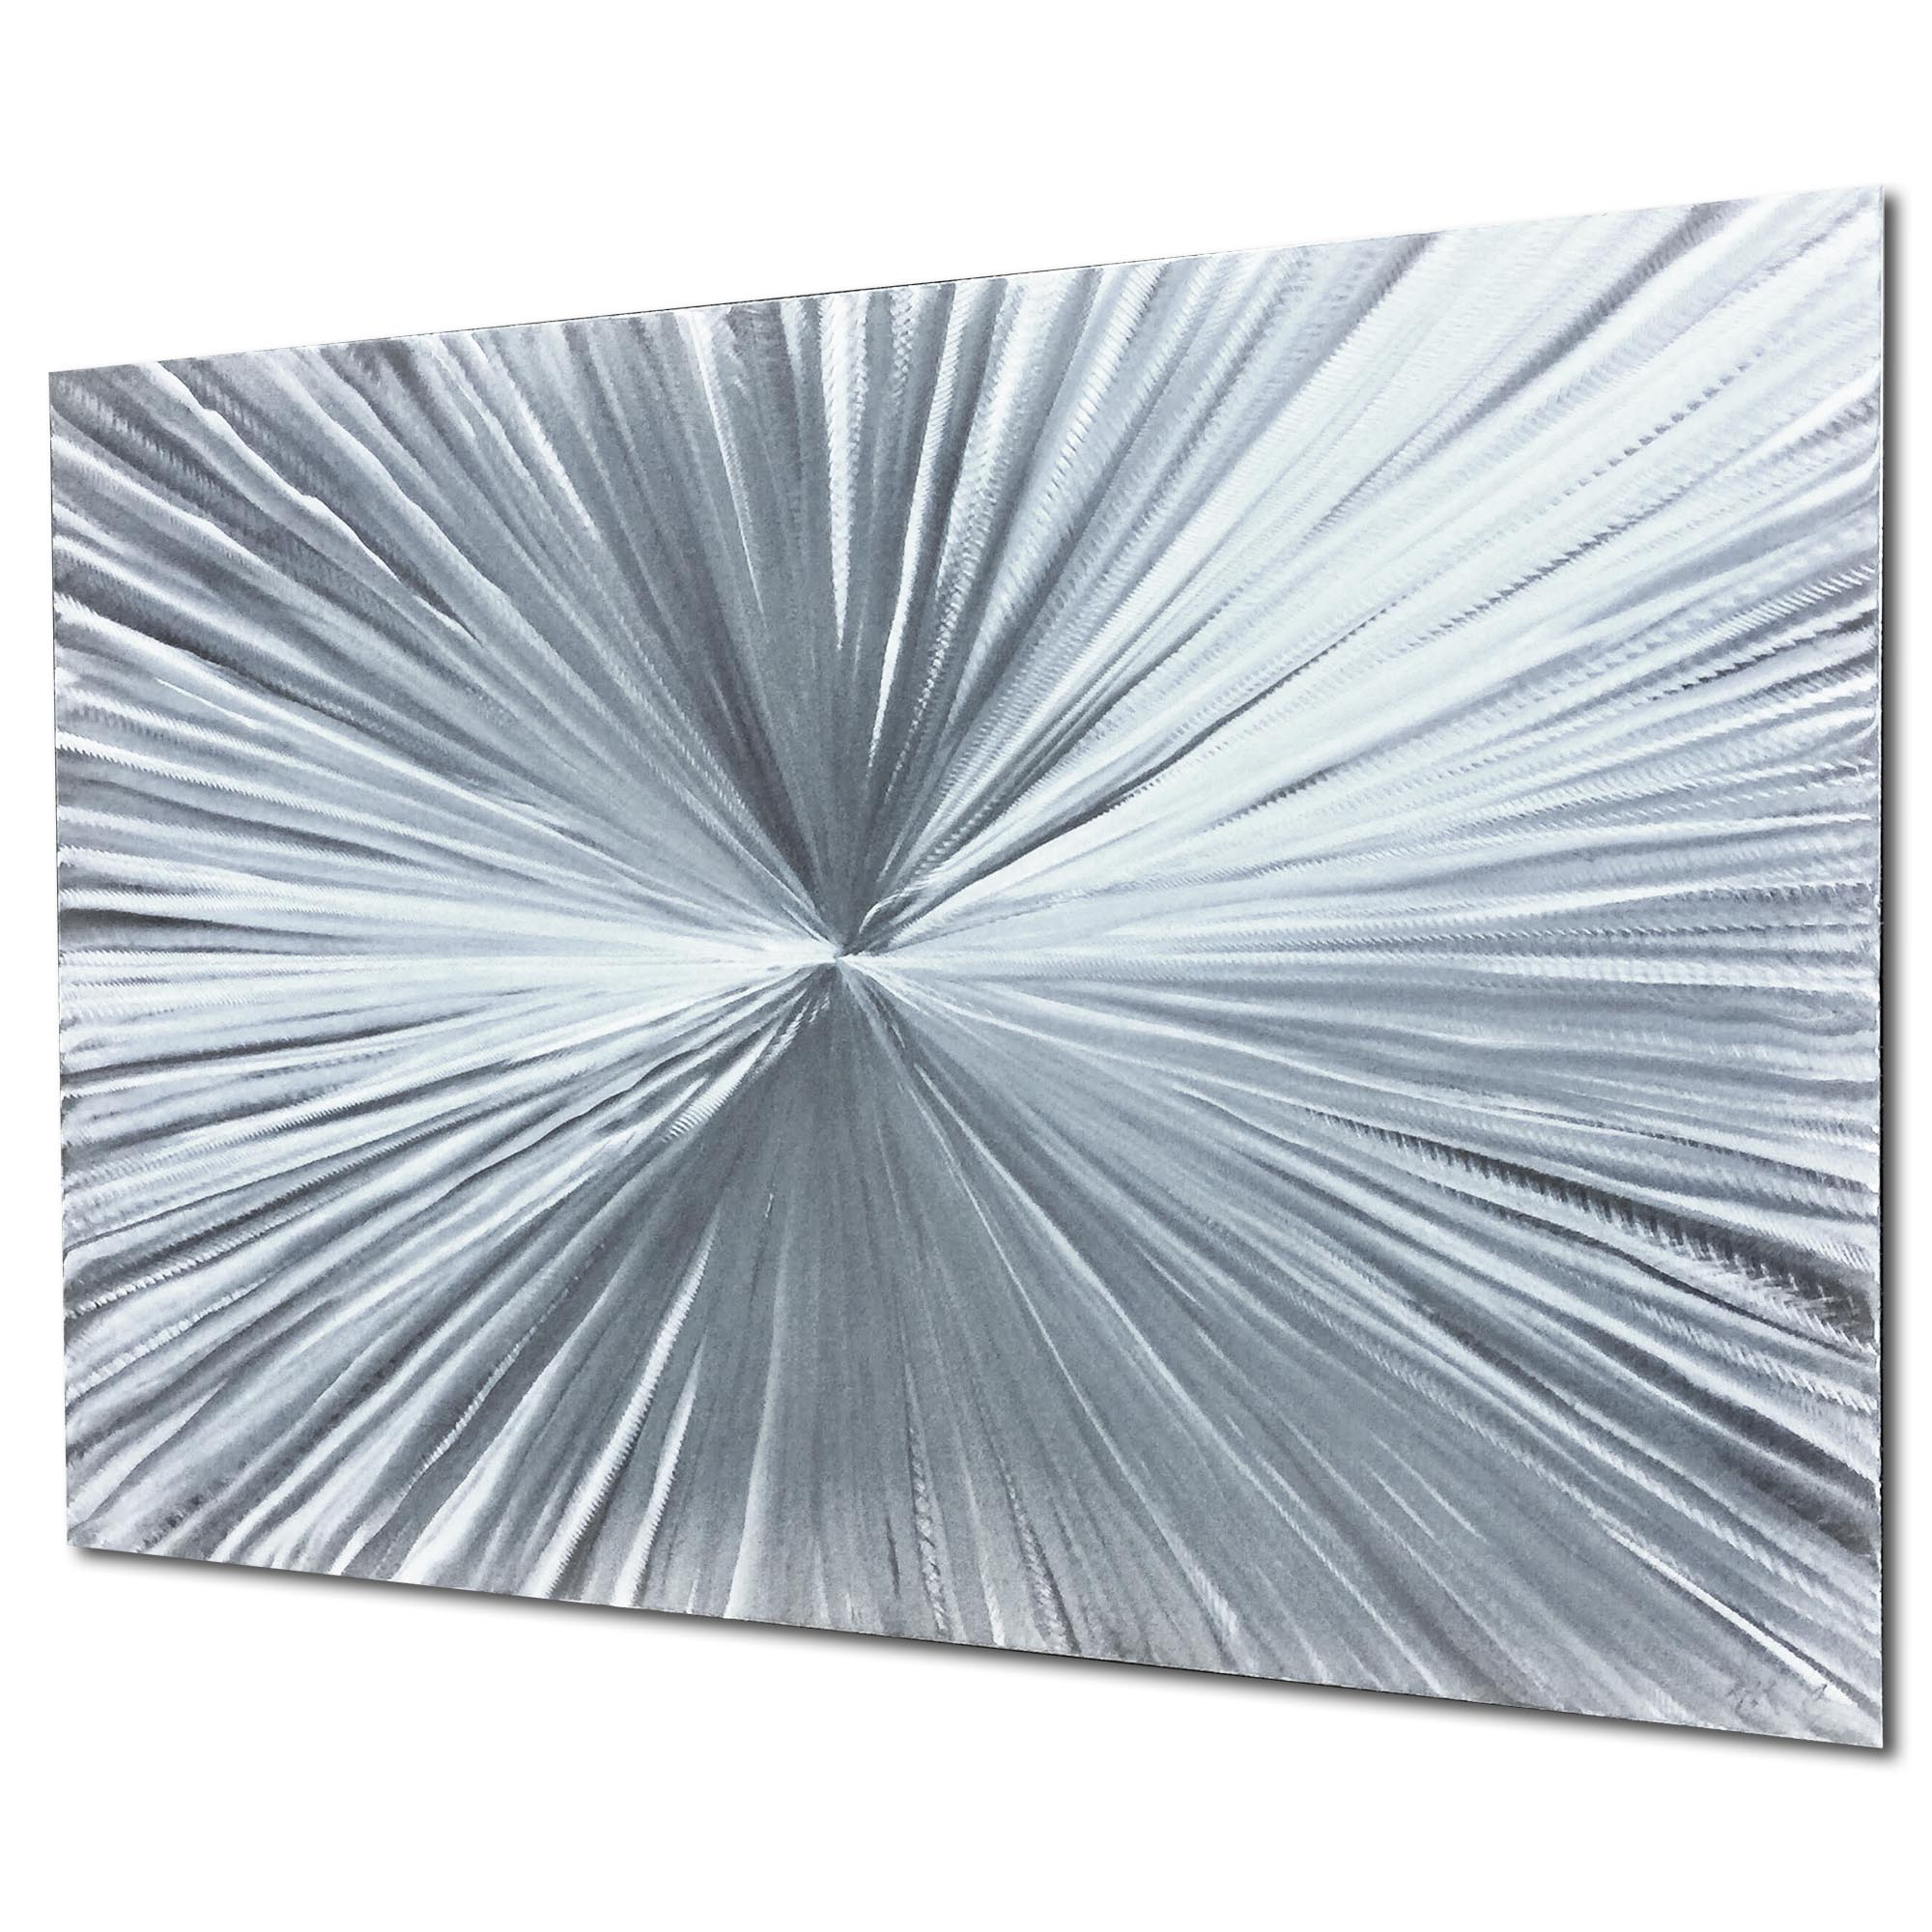 Bursting by Helena Martin - Sunburst Metal Art on Natural Aluminum - Image 2